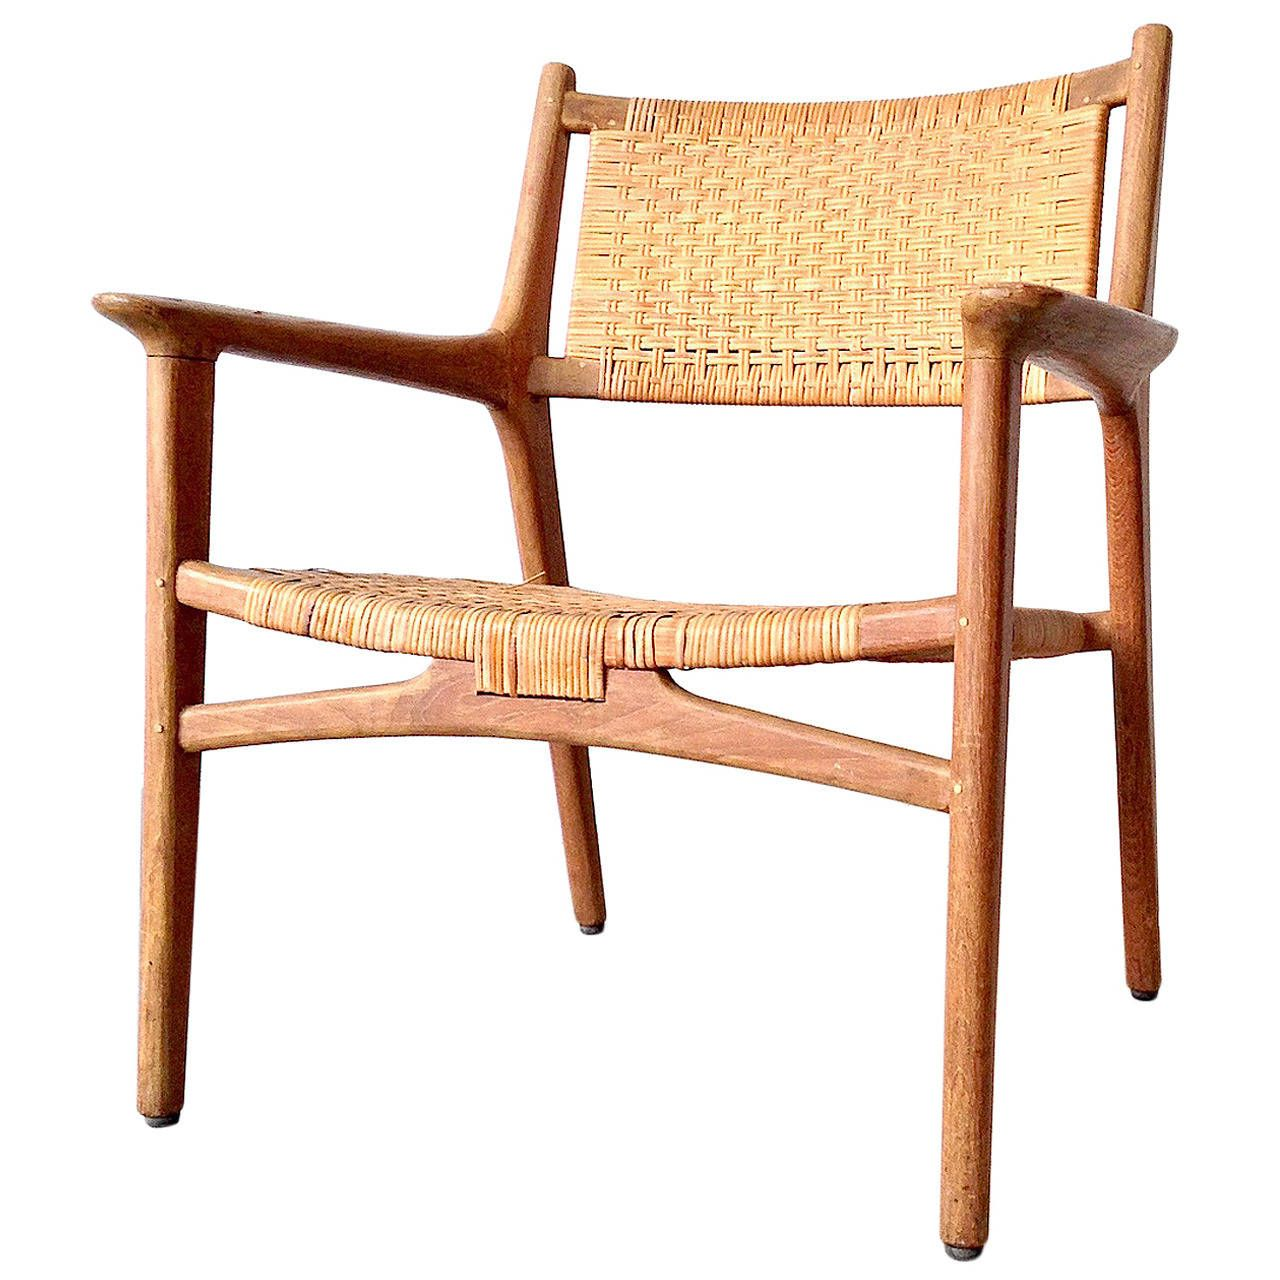 Hans J Wegner For Johannes Hansen Teak Cane Easy Chair 1951 Furniture Design Chair Scandinavian Chairs Chair